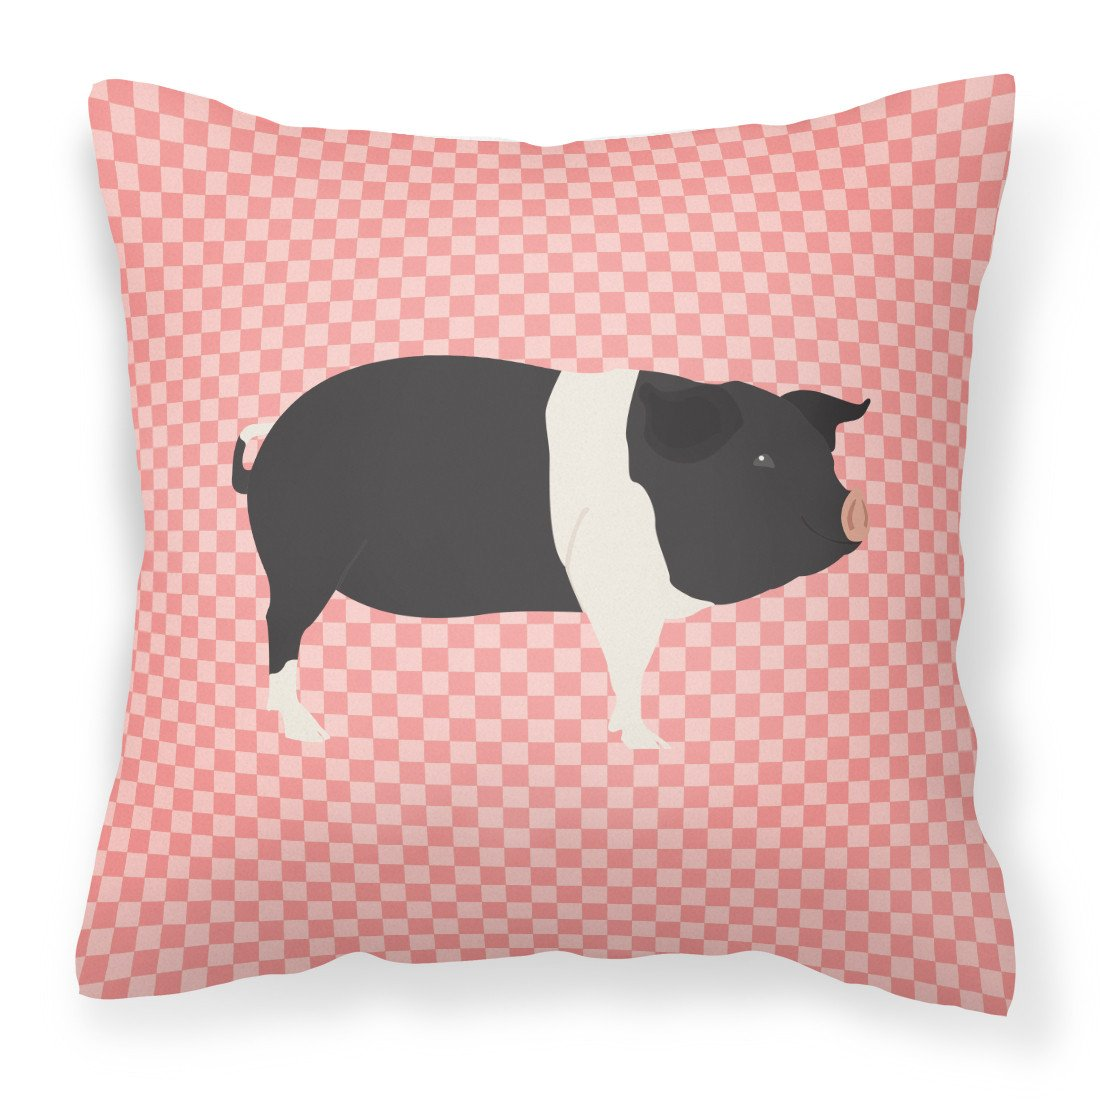 Hampshire Pig Pink Check Fabric Decorative Pillow BB7939PW1818 by Caroline's Treasures